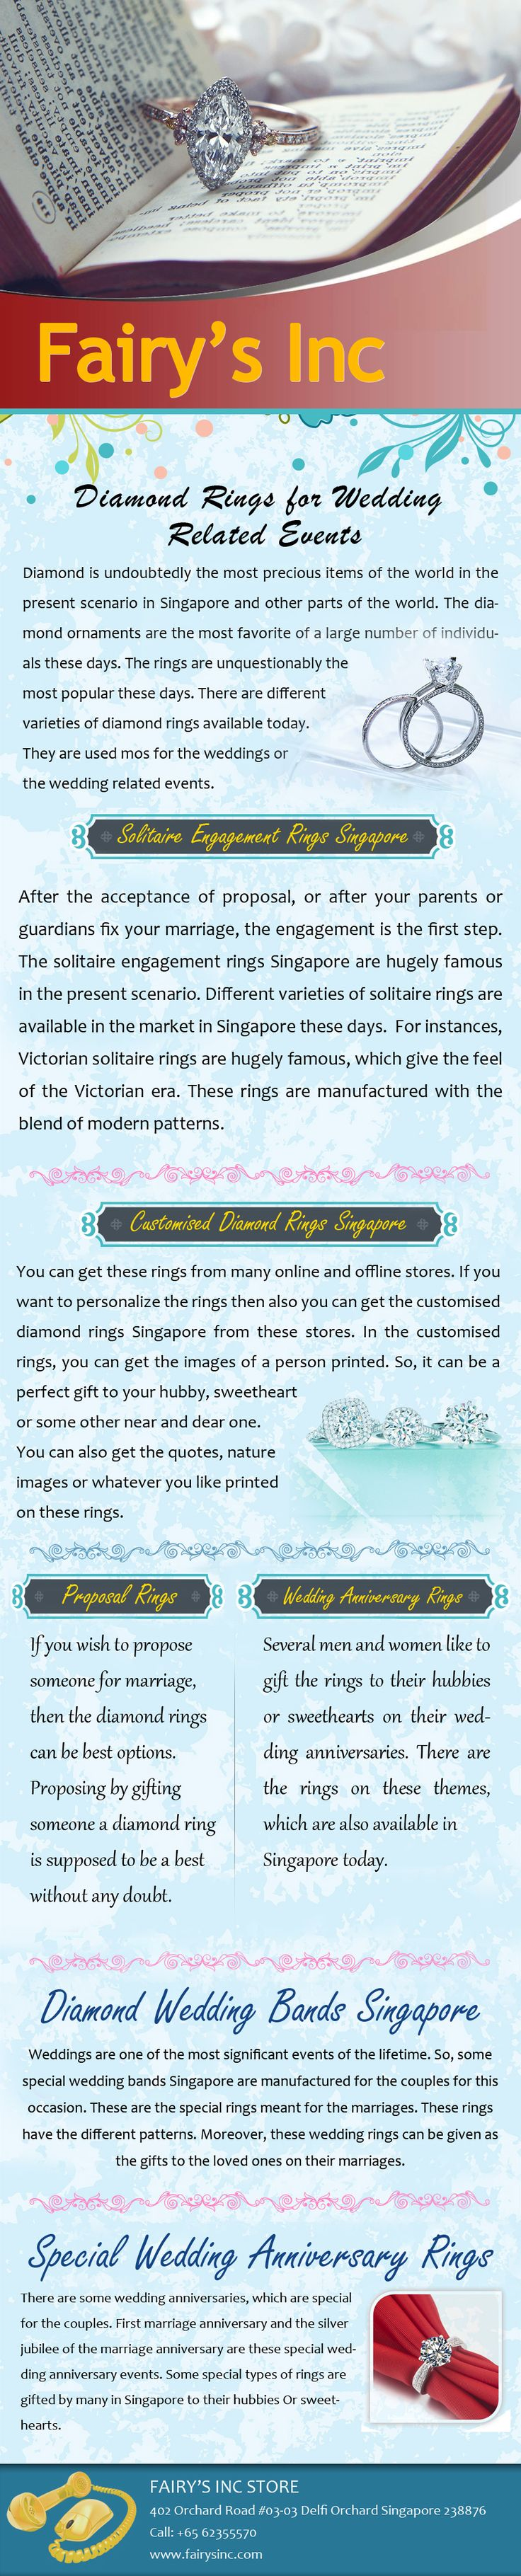 Diamond is the material, which is unquestionably perfect to give to your hubby or sweetheart in the engagements. There is a   wide variety of diamond engagement rings Singapore available today. You can get these rings in different colors